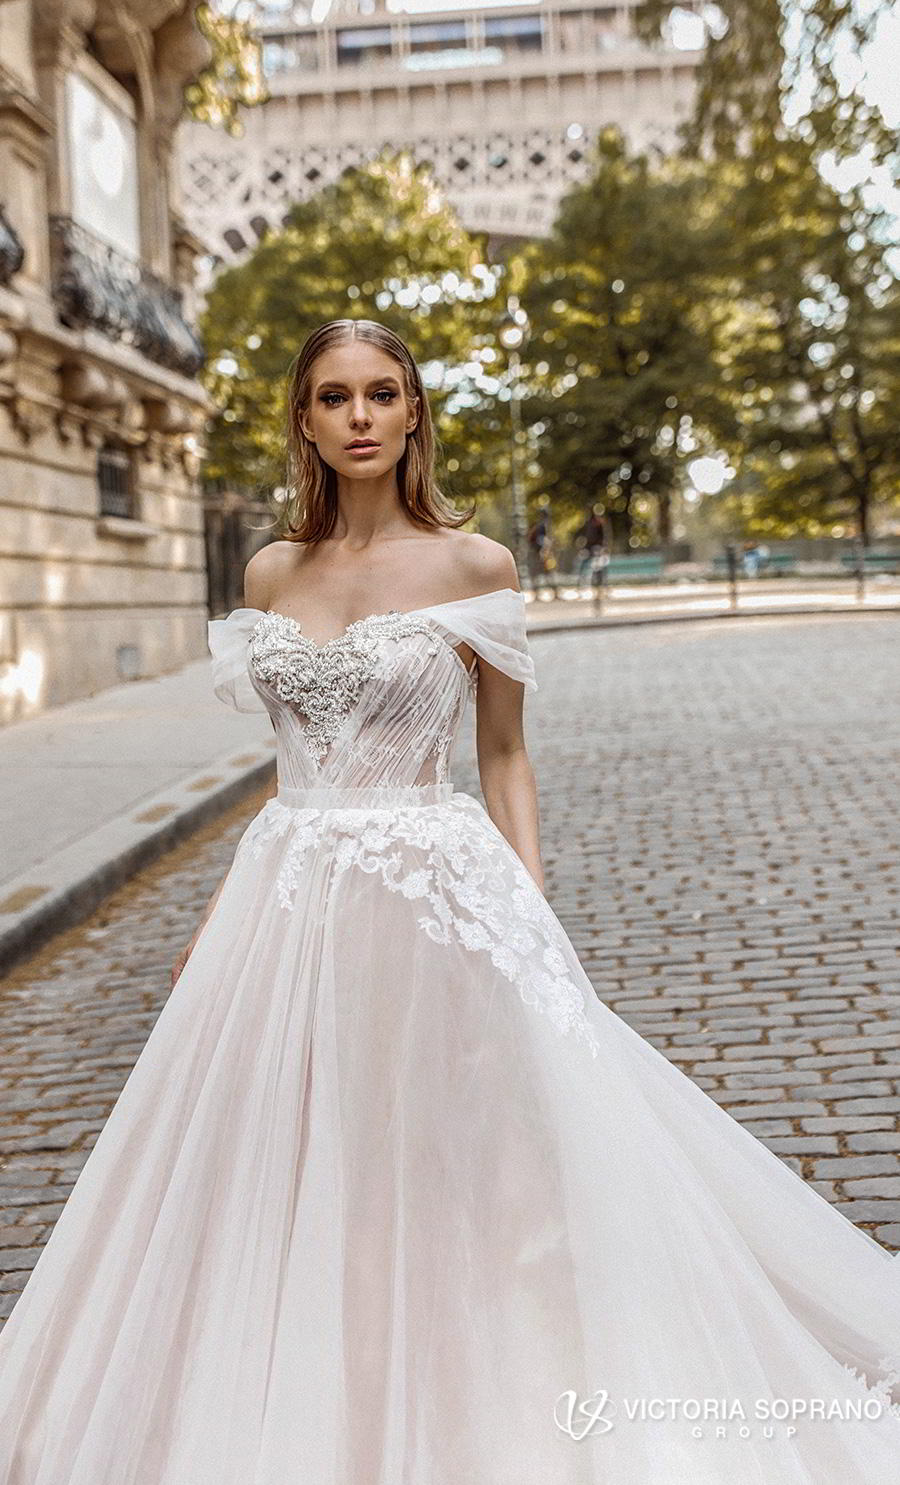 victoria soprano 2019 bridal off the shoulder sweetheart neckline heavily embellished bodice romantic princess a line ball gown weddding dress royal train (manolo) zv